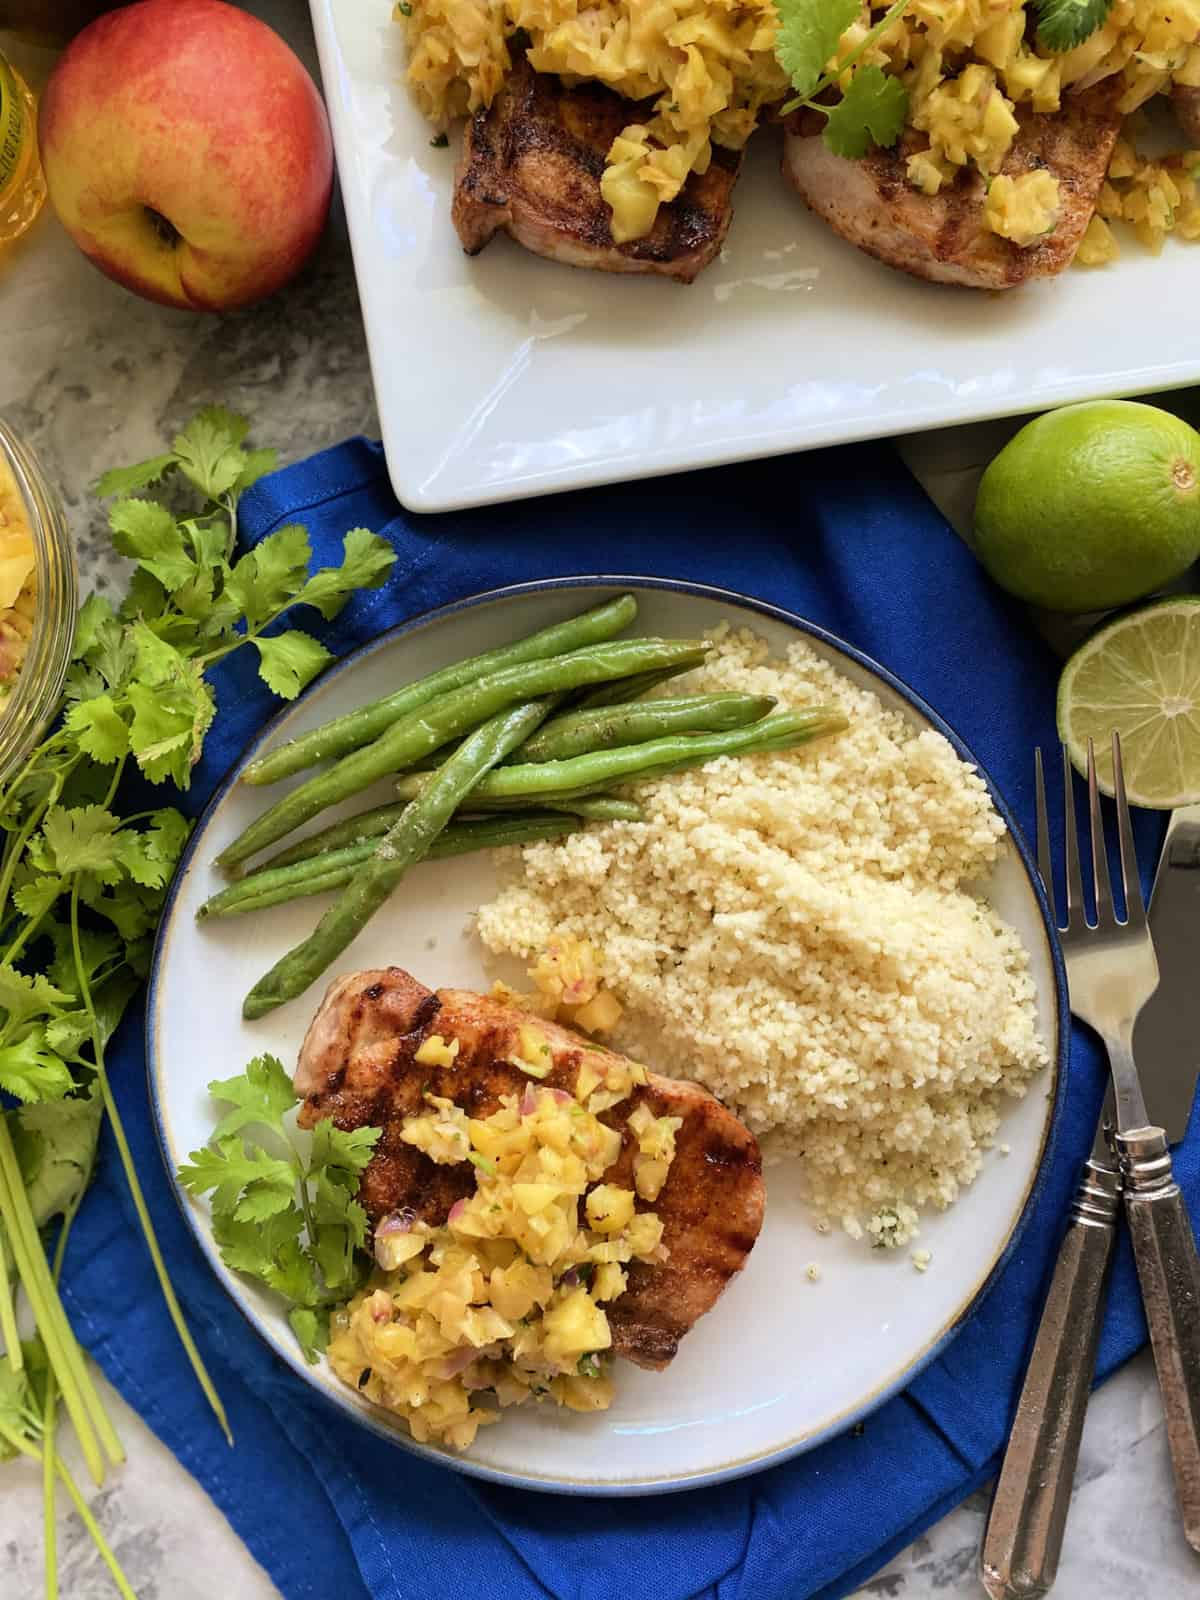 Top view of a plate and platter of pork chops, fruit salsa, couscous, and green beans.